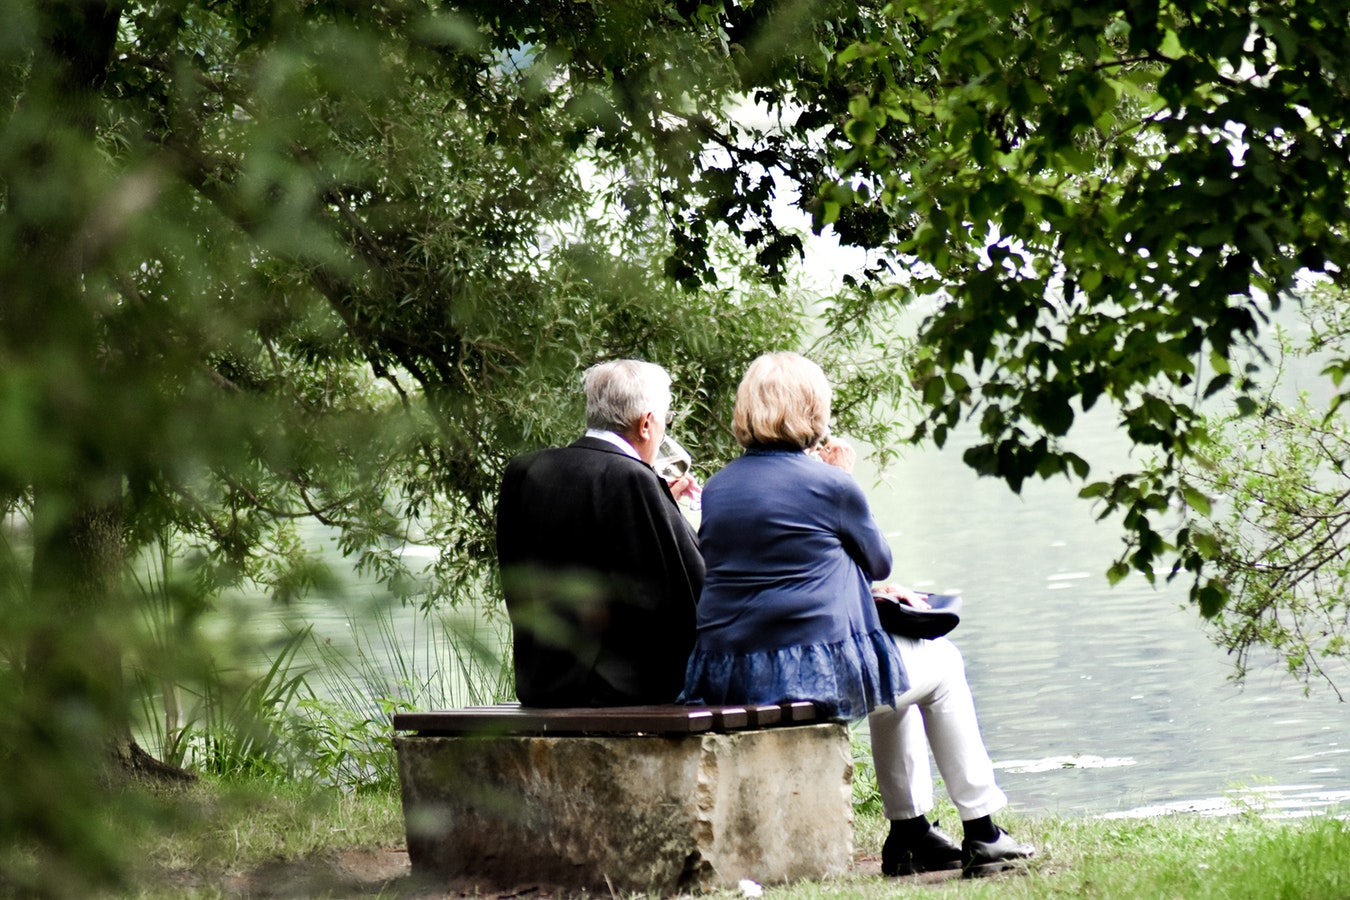 An older couple sitting on the rocks overlooking the water discussing what is korsakoff syndrome